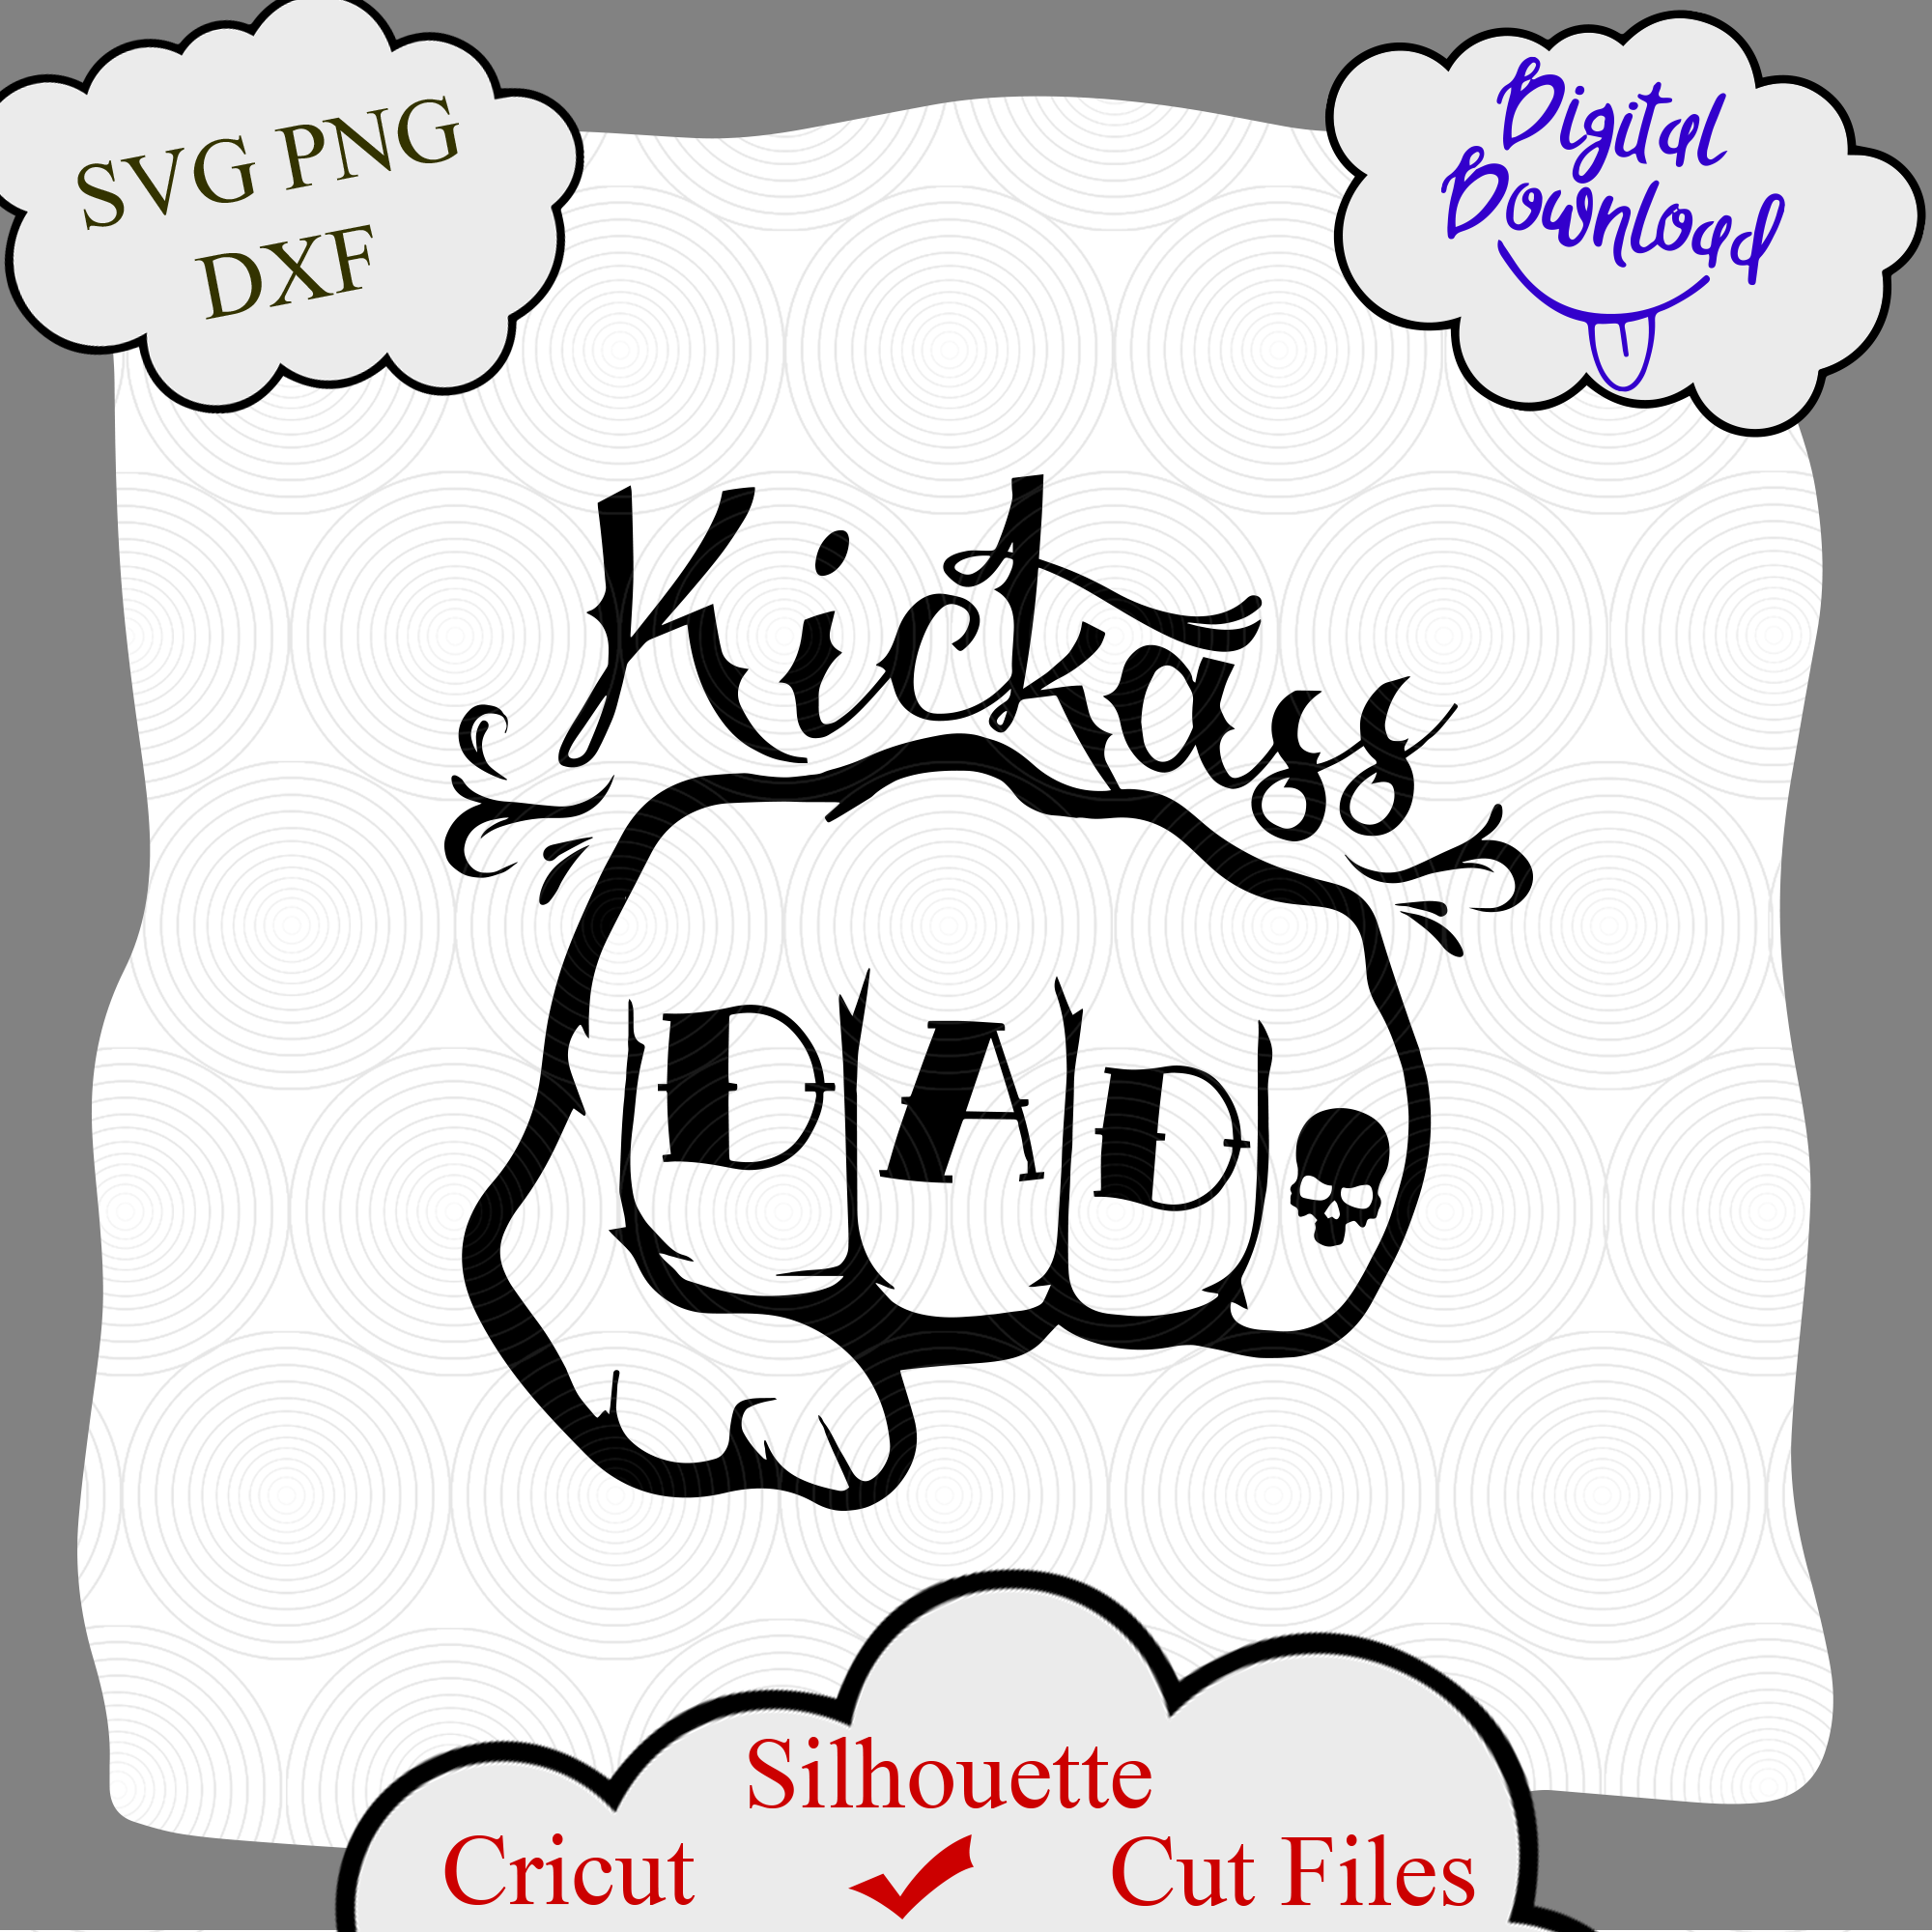 Fathers Day Svg Kickass Dad Svg Dad Svg Kickass Dad Gifts For Dad Badass Dad Svg Print Rad Dad A C Moore Marketplace